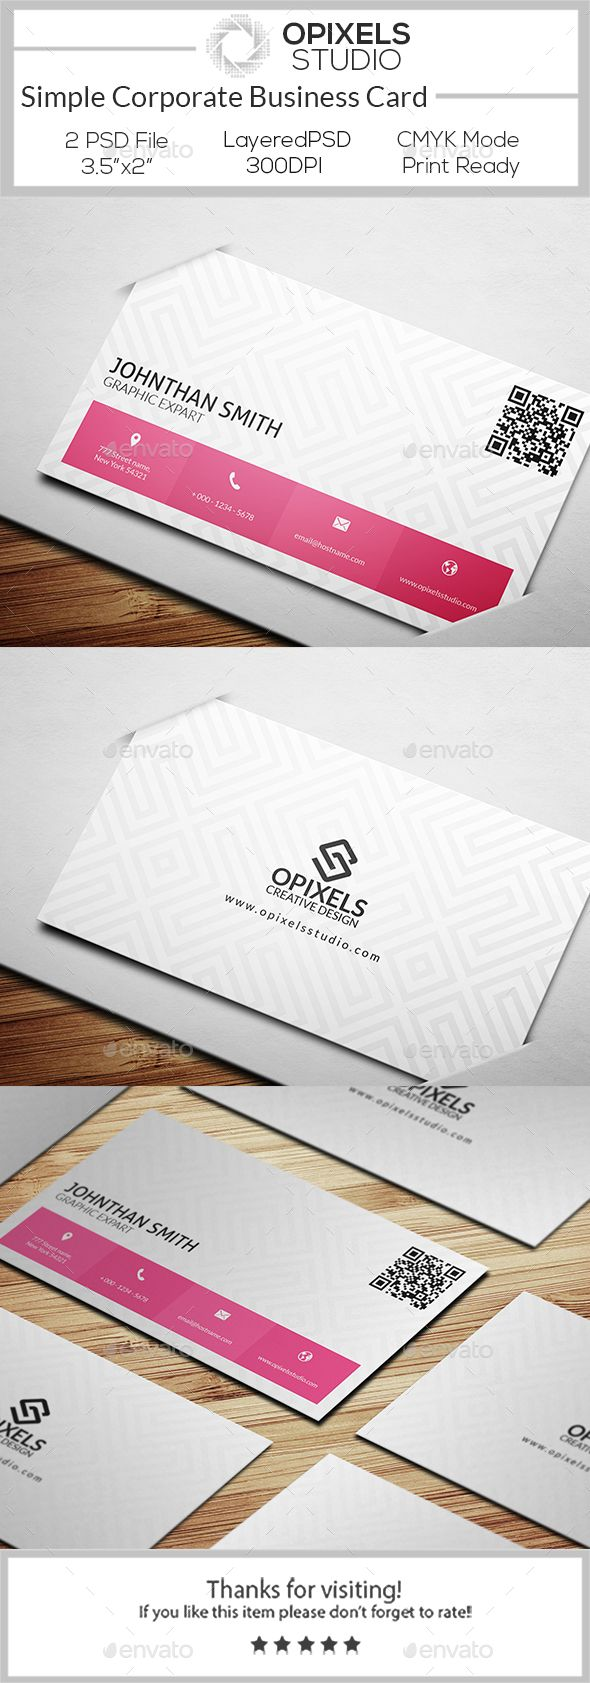 Business card printing free templates from nextdayflyers - Simple Corporate Business Card